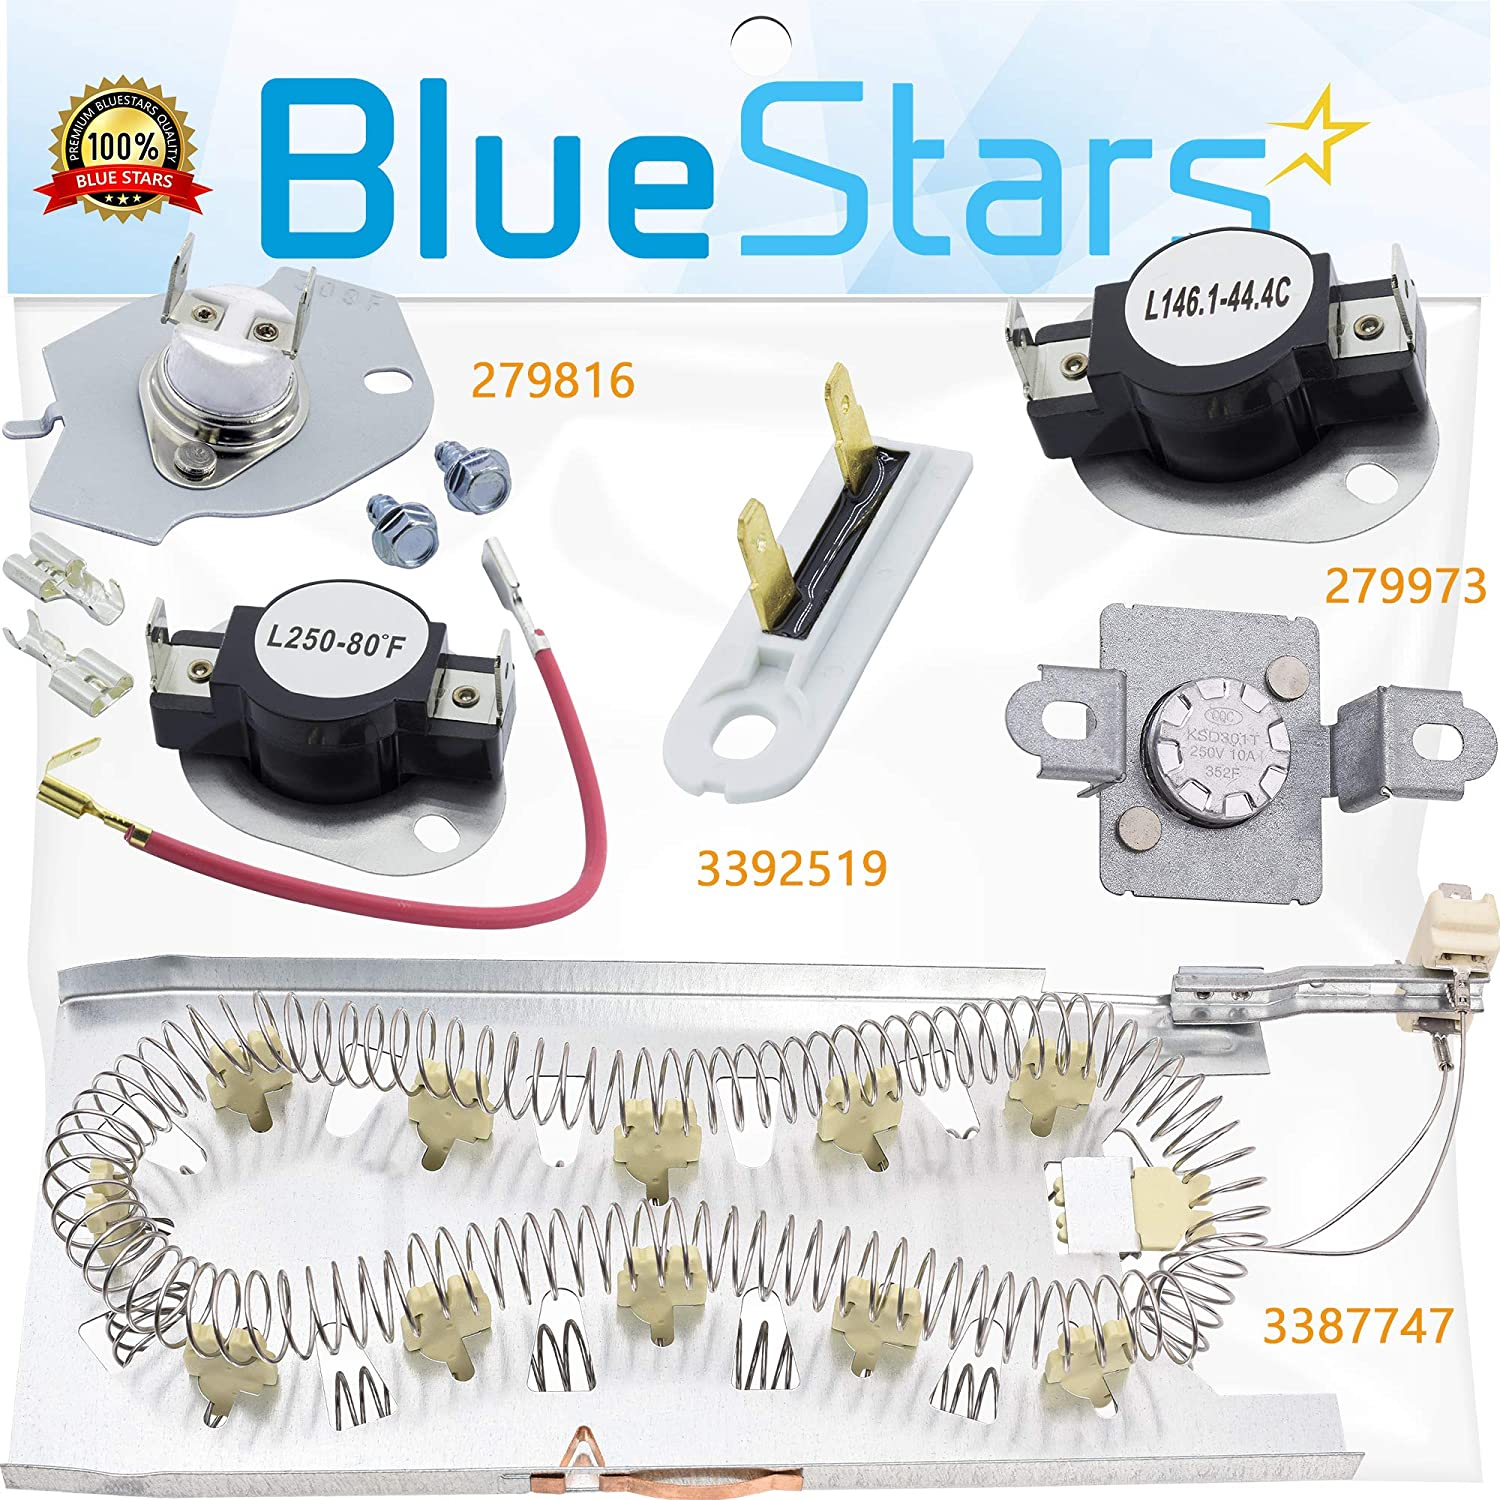 NEW 3387747 Dryer Heating Element & 279816 Thermostat & 279973 3392519 Thermal cut-off Fuse Kit Replacement by Blue Stars - Exact Fit for Kenmore Whirlpool KitchenAid Dryers